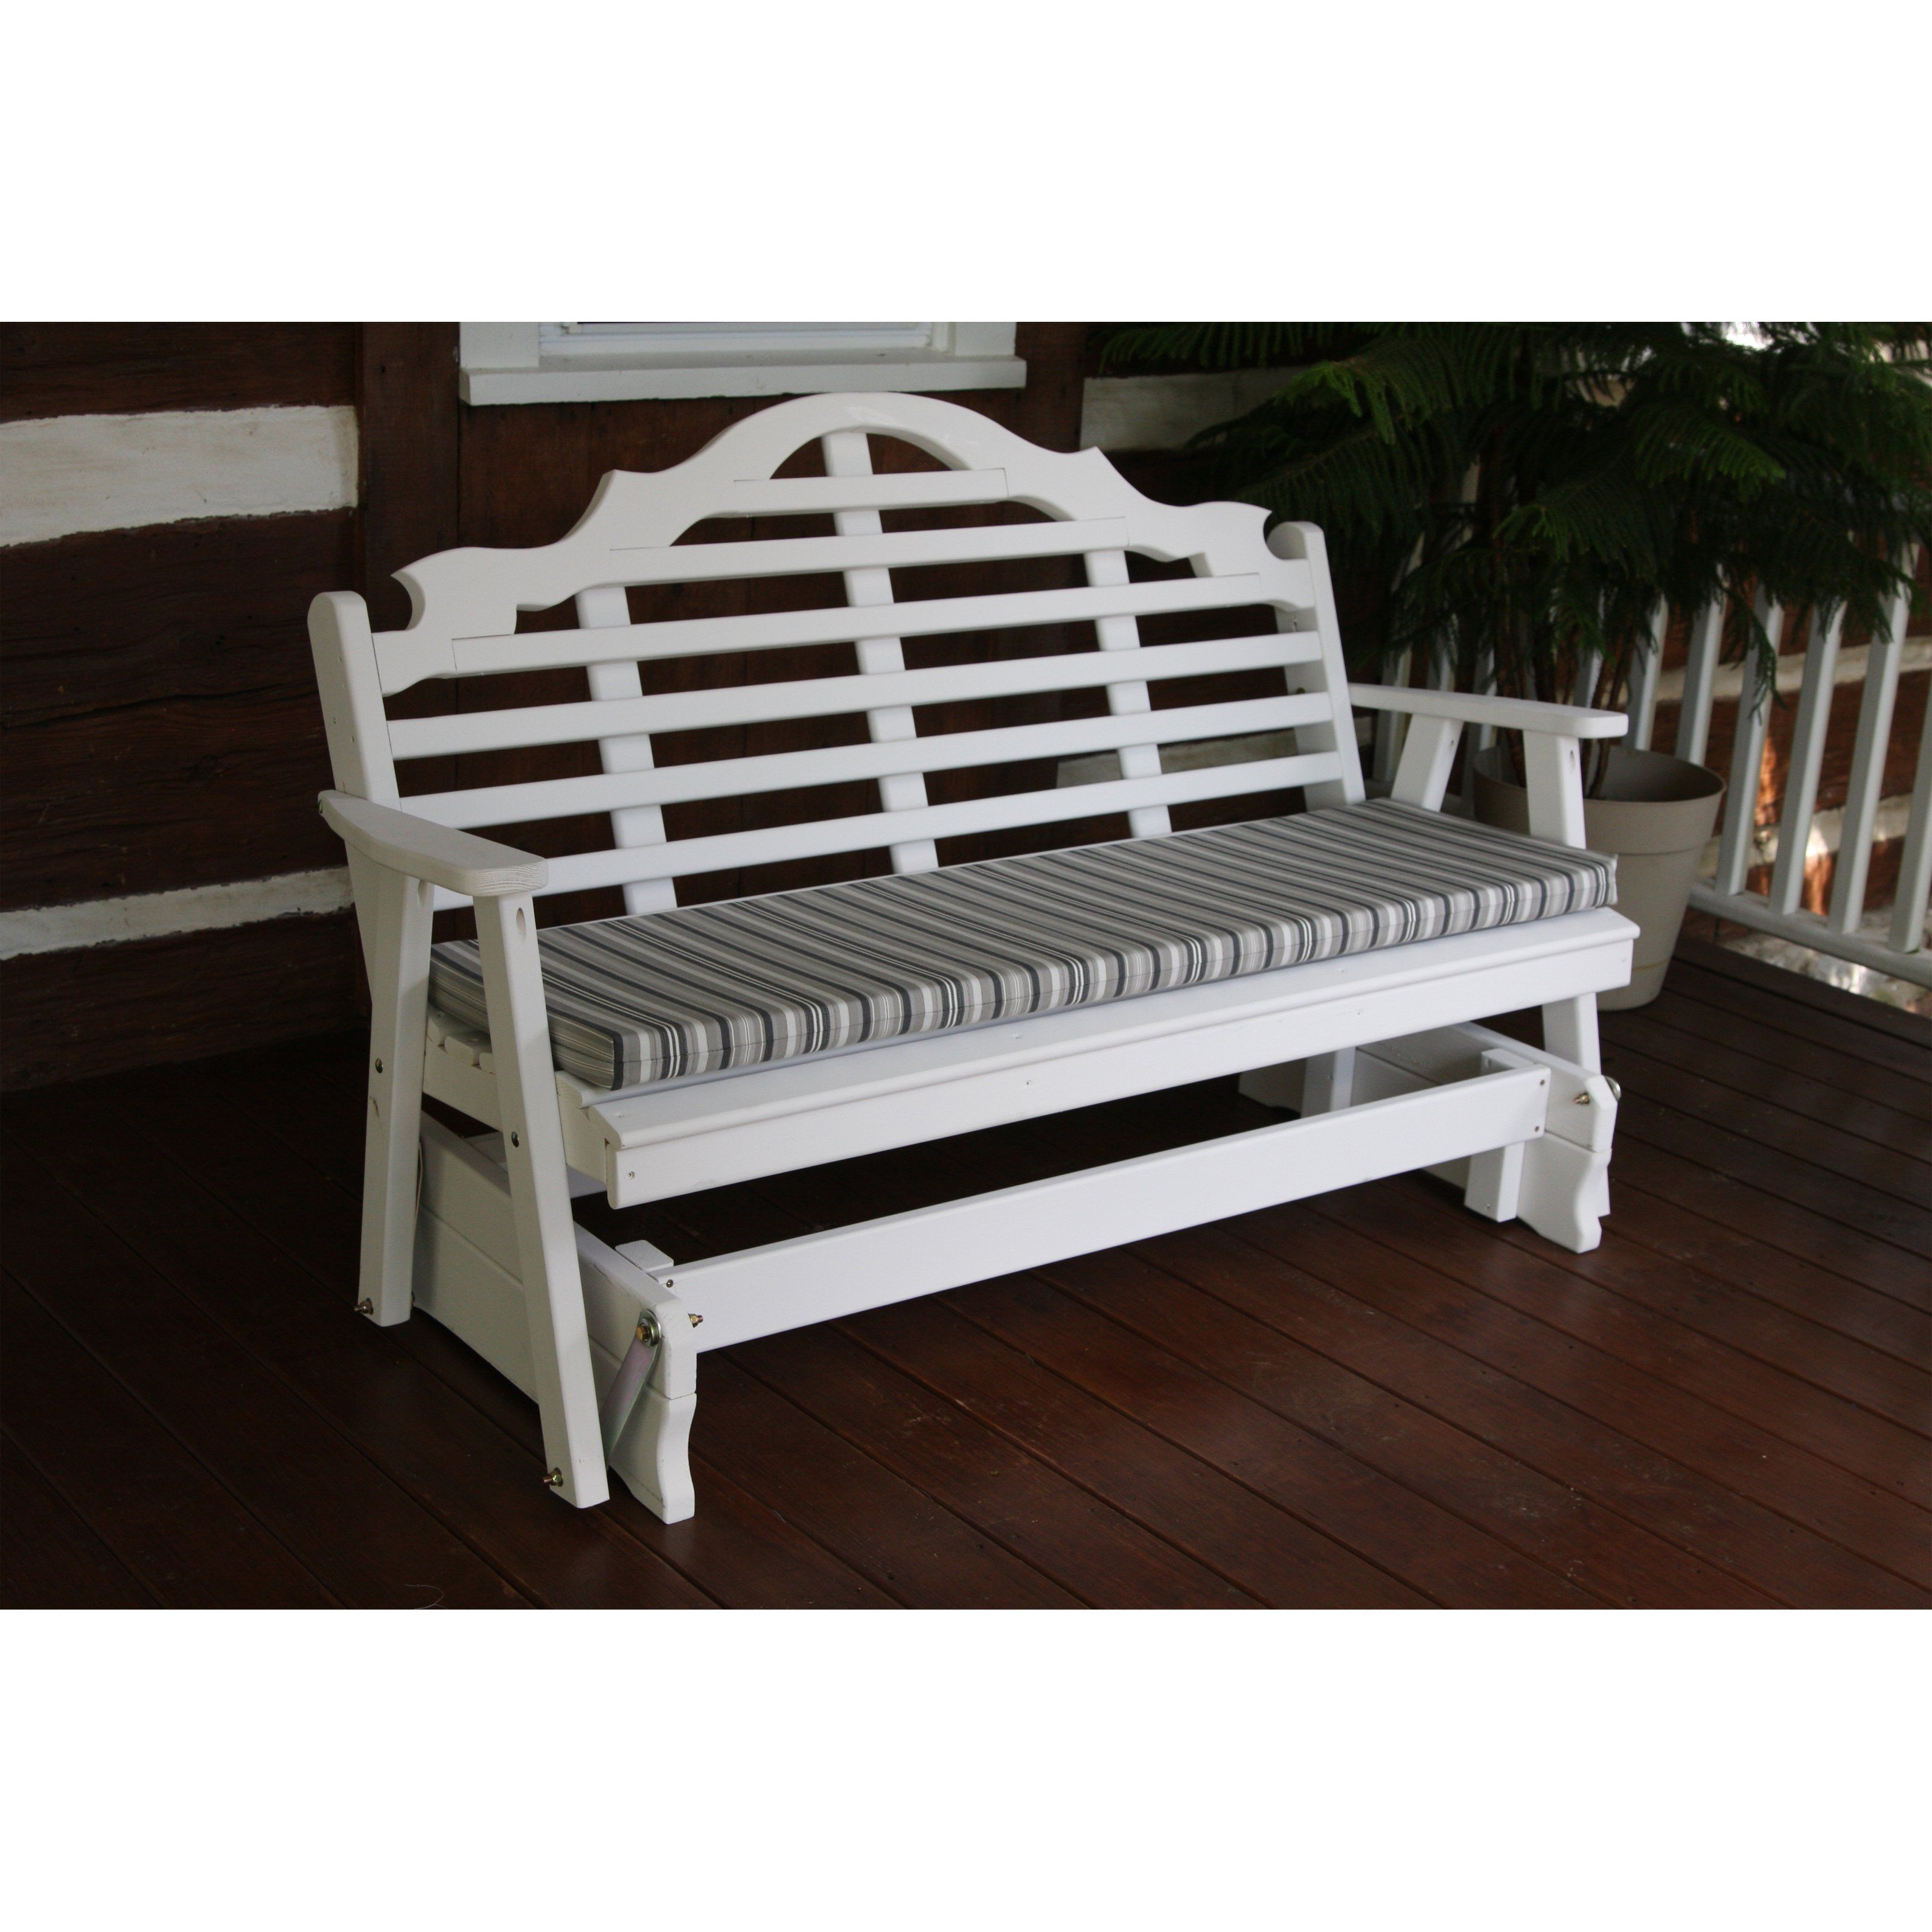 c glider benches gliders furniture sunnyland swings start outdoor bench porch